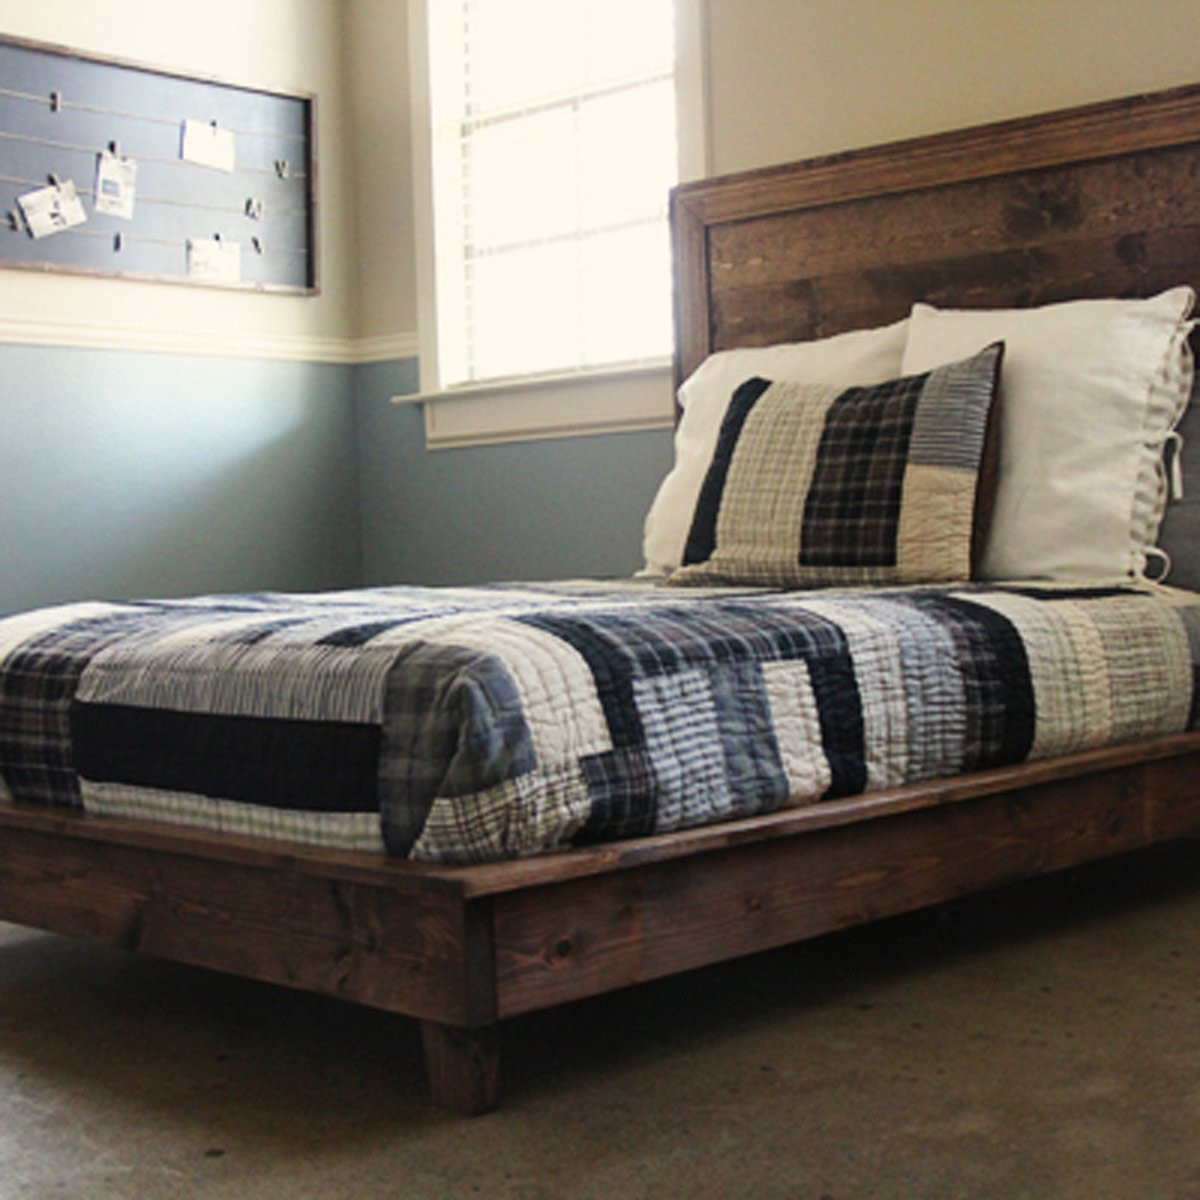 Best ideas about Simple DIY Platform Bed . Save or Pin 10 Awesome DIY Platform Bed Designs — The Family Handyman Now.